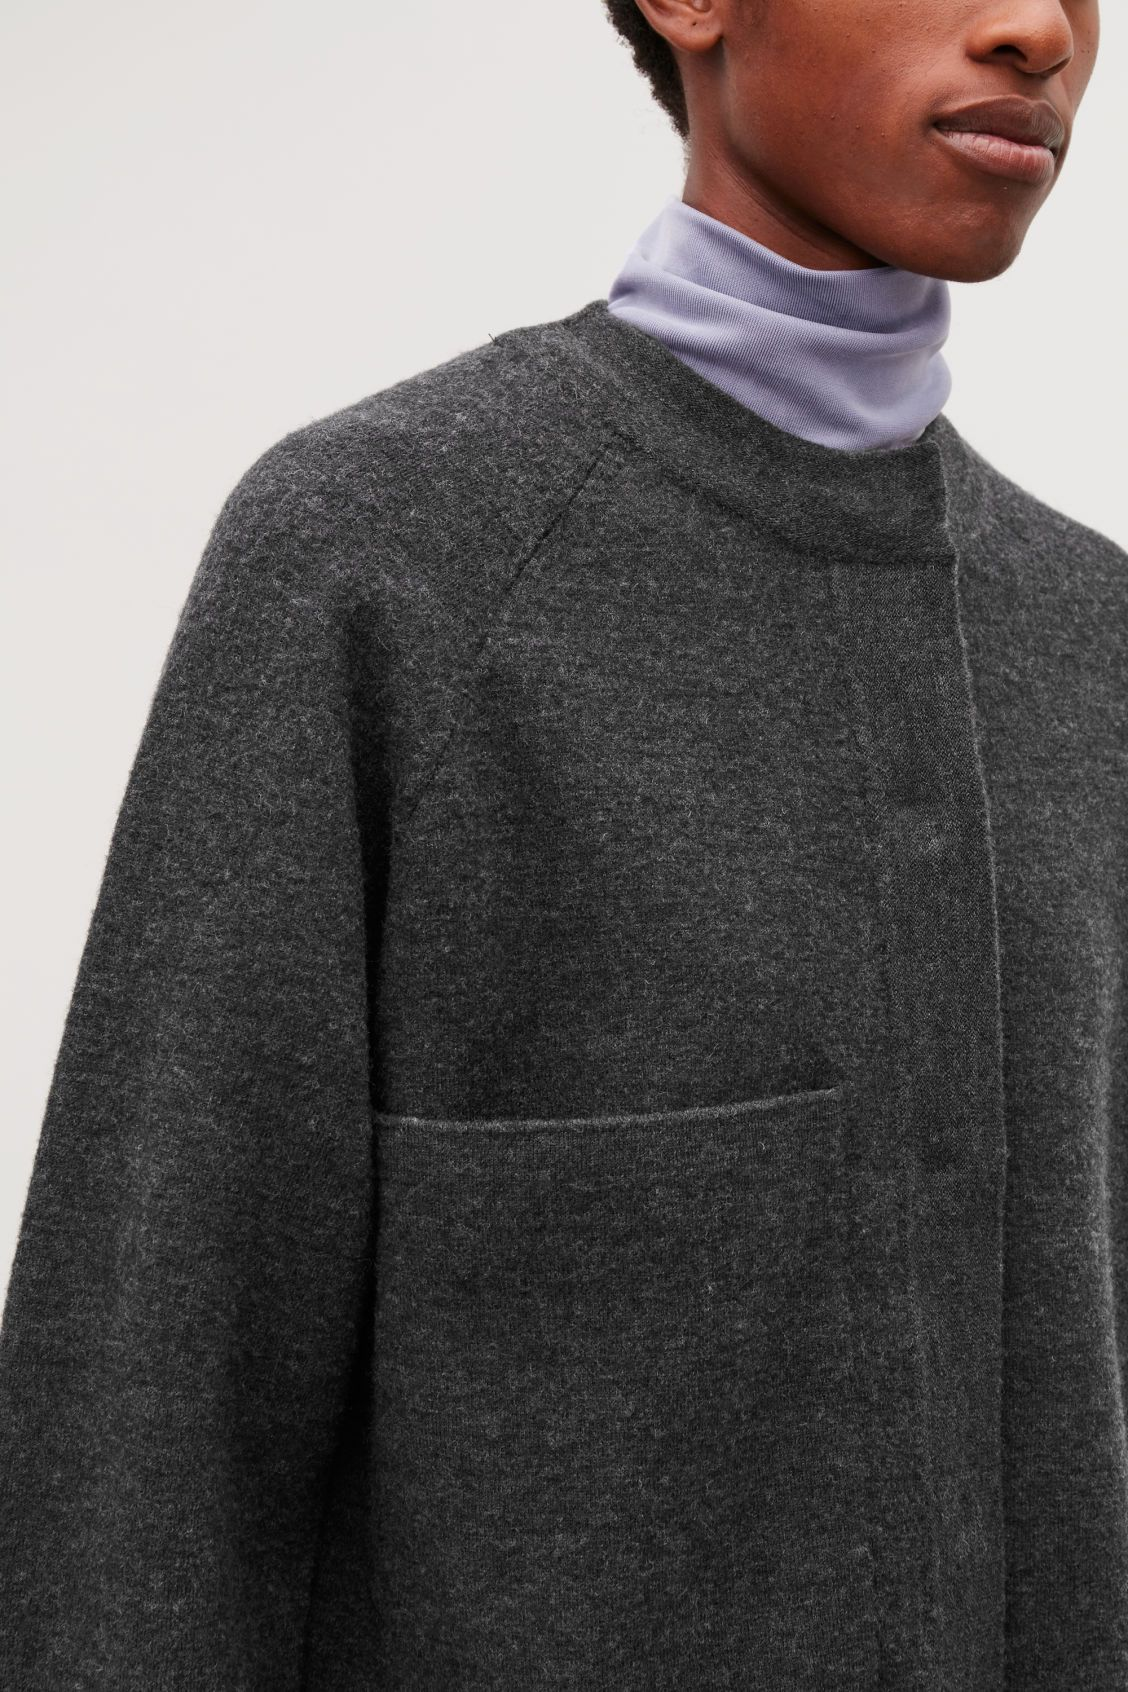 BOILED MERINO-WOOL JACKET | TRENDS WOMEN FASHION | Men